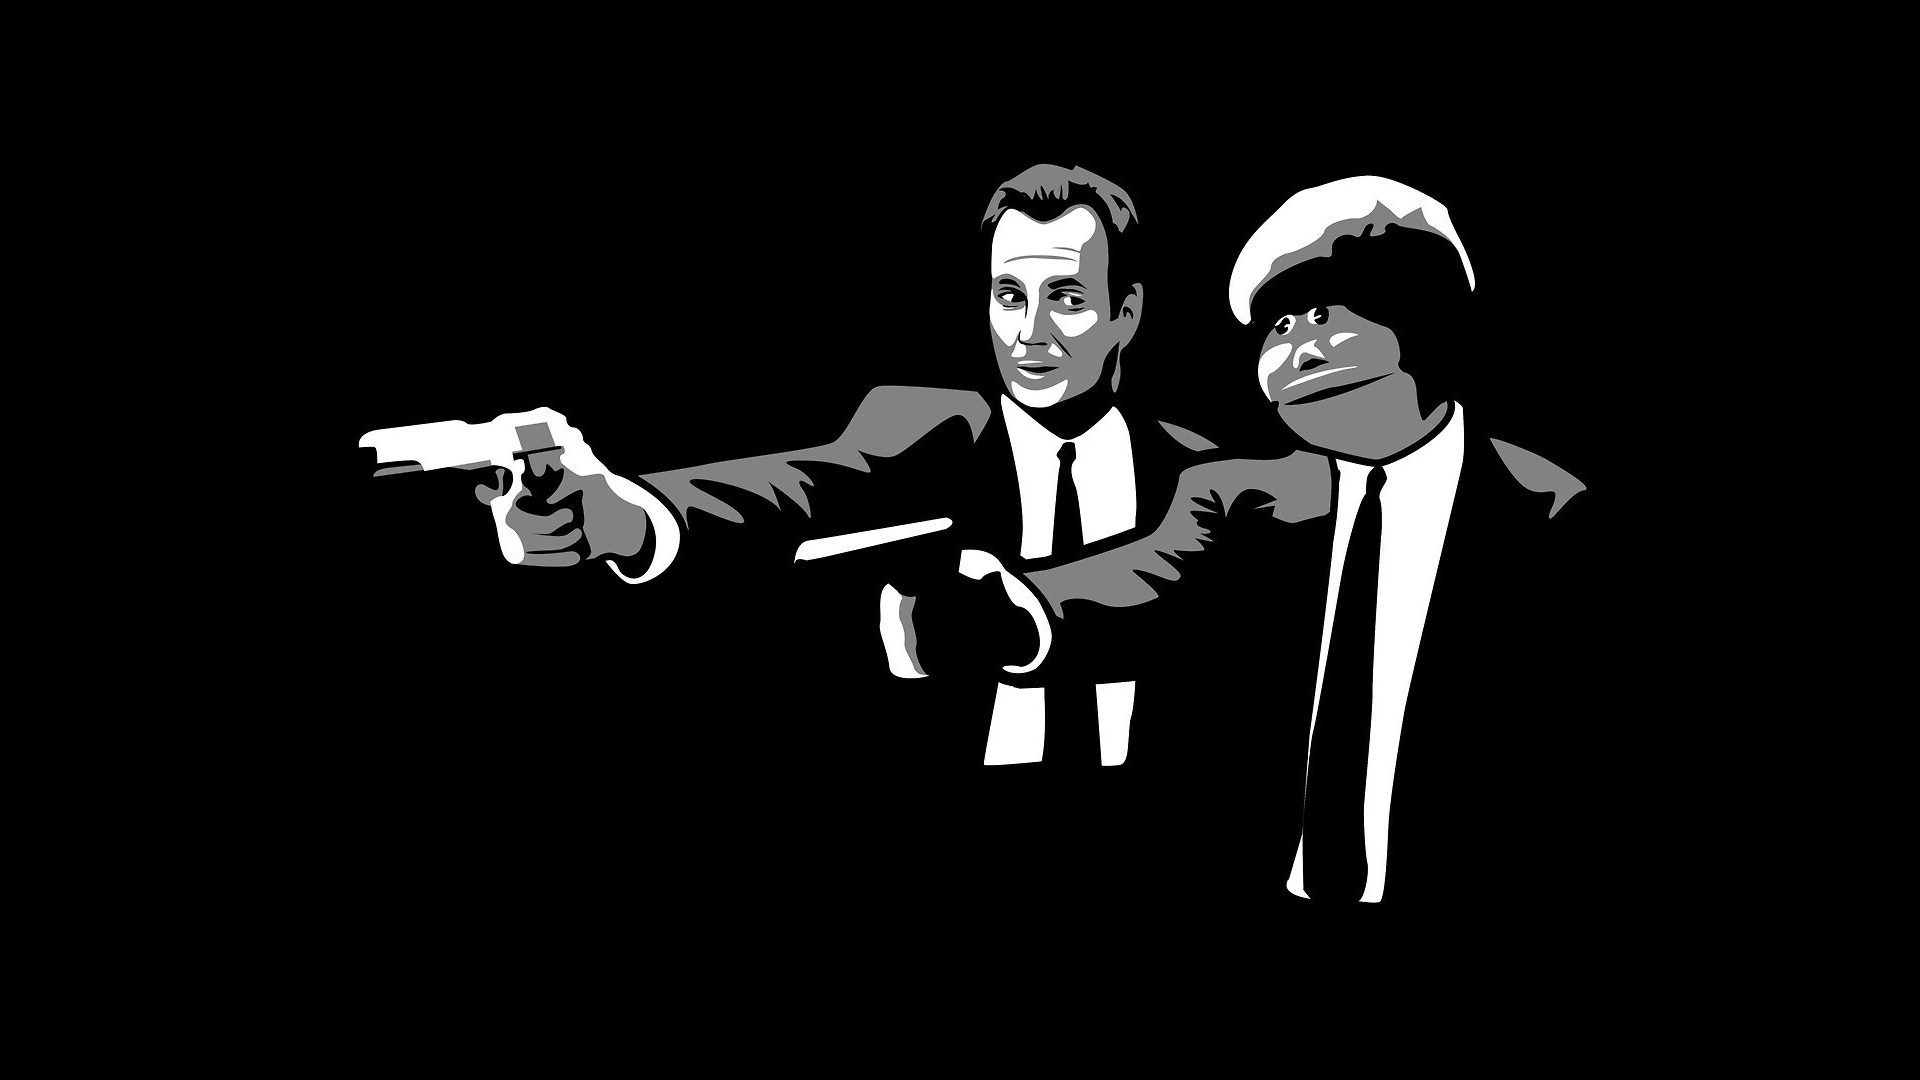 Fall Out Boy Wallpaper Ipad Pulp Fiction Wallpapers High Quality Download Free